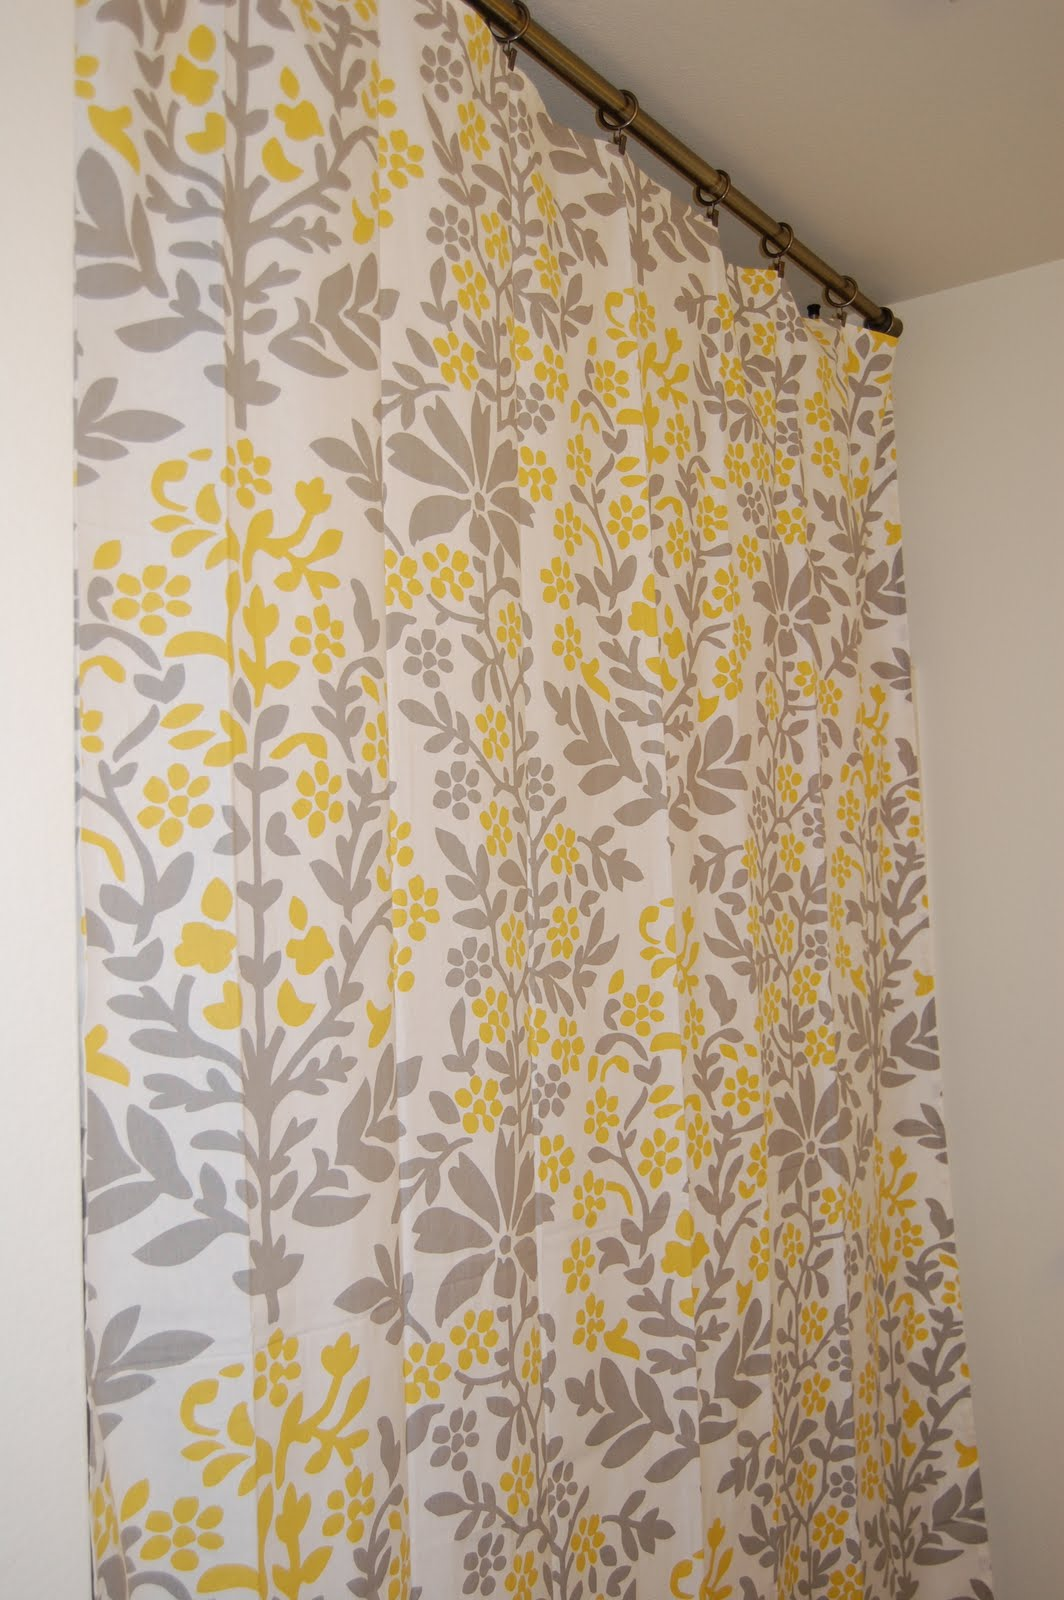 Christiney S Crafts Shower Curtain Makeover Dwellstudio For Target Image Collections